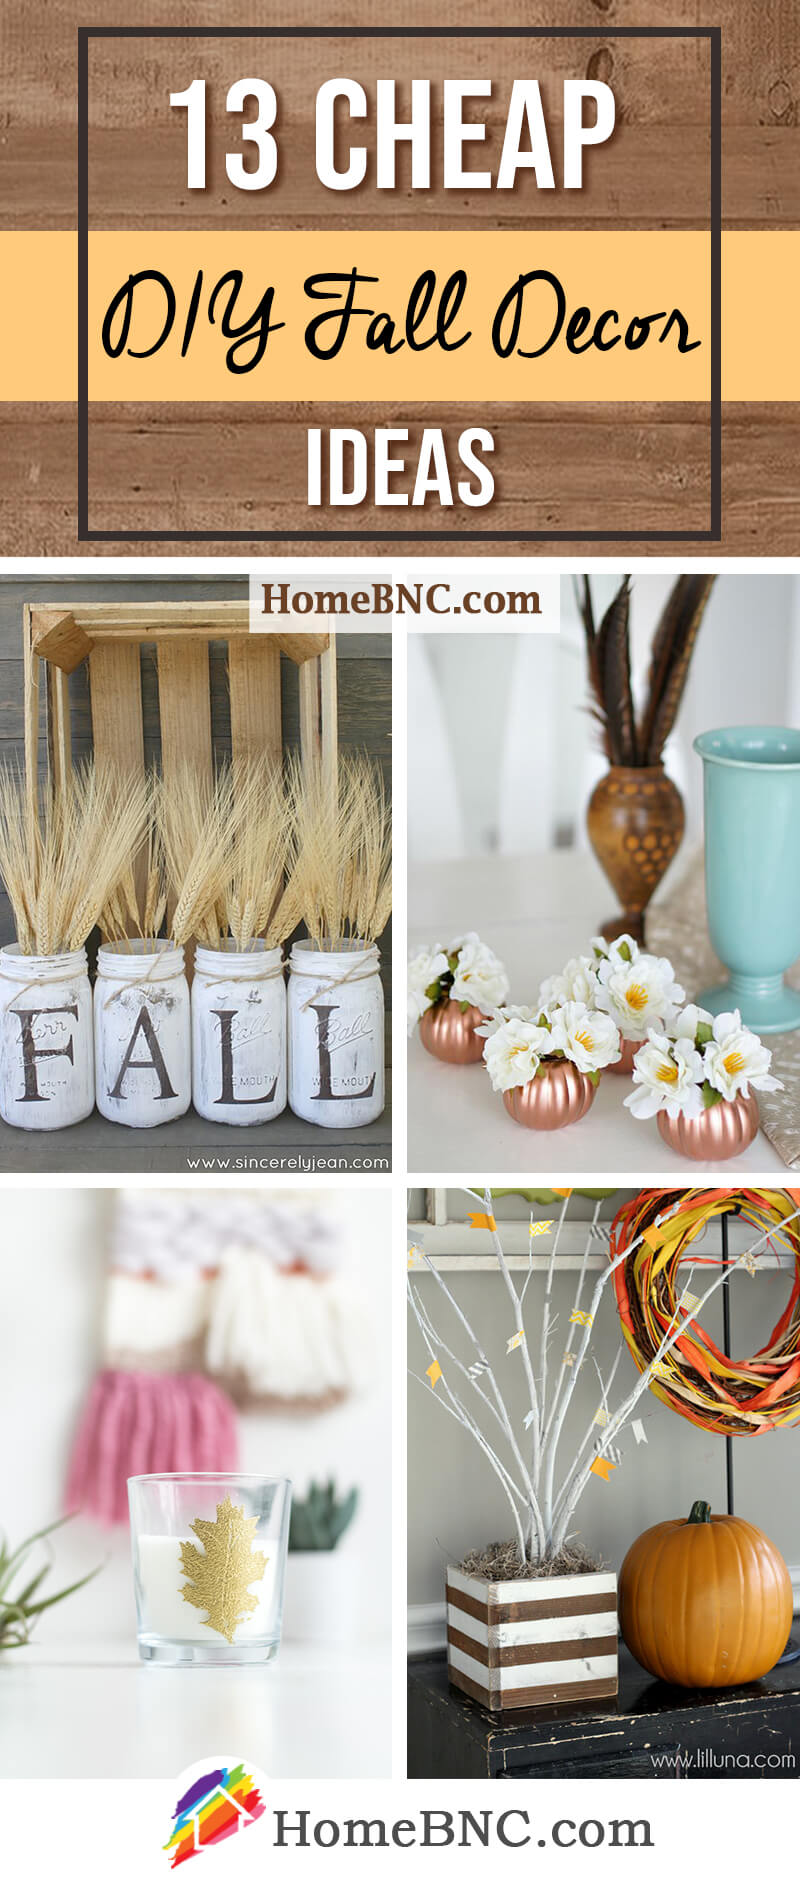 Cheap DIY Fall Decor Ideas